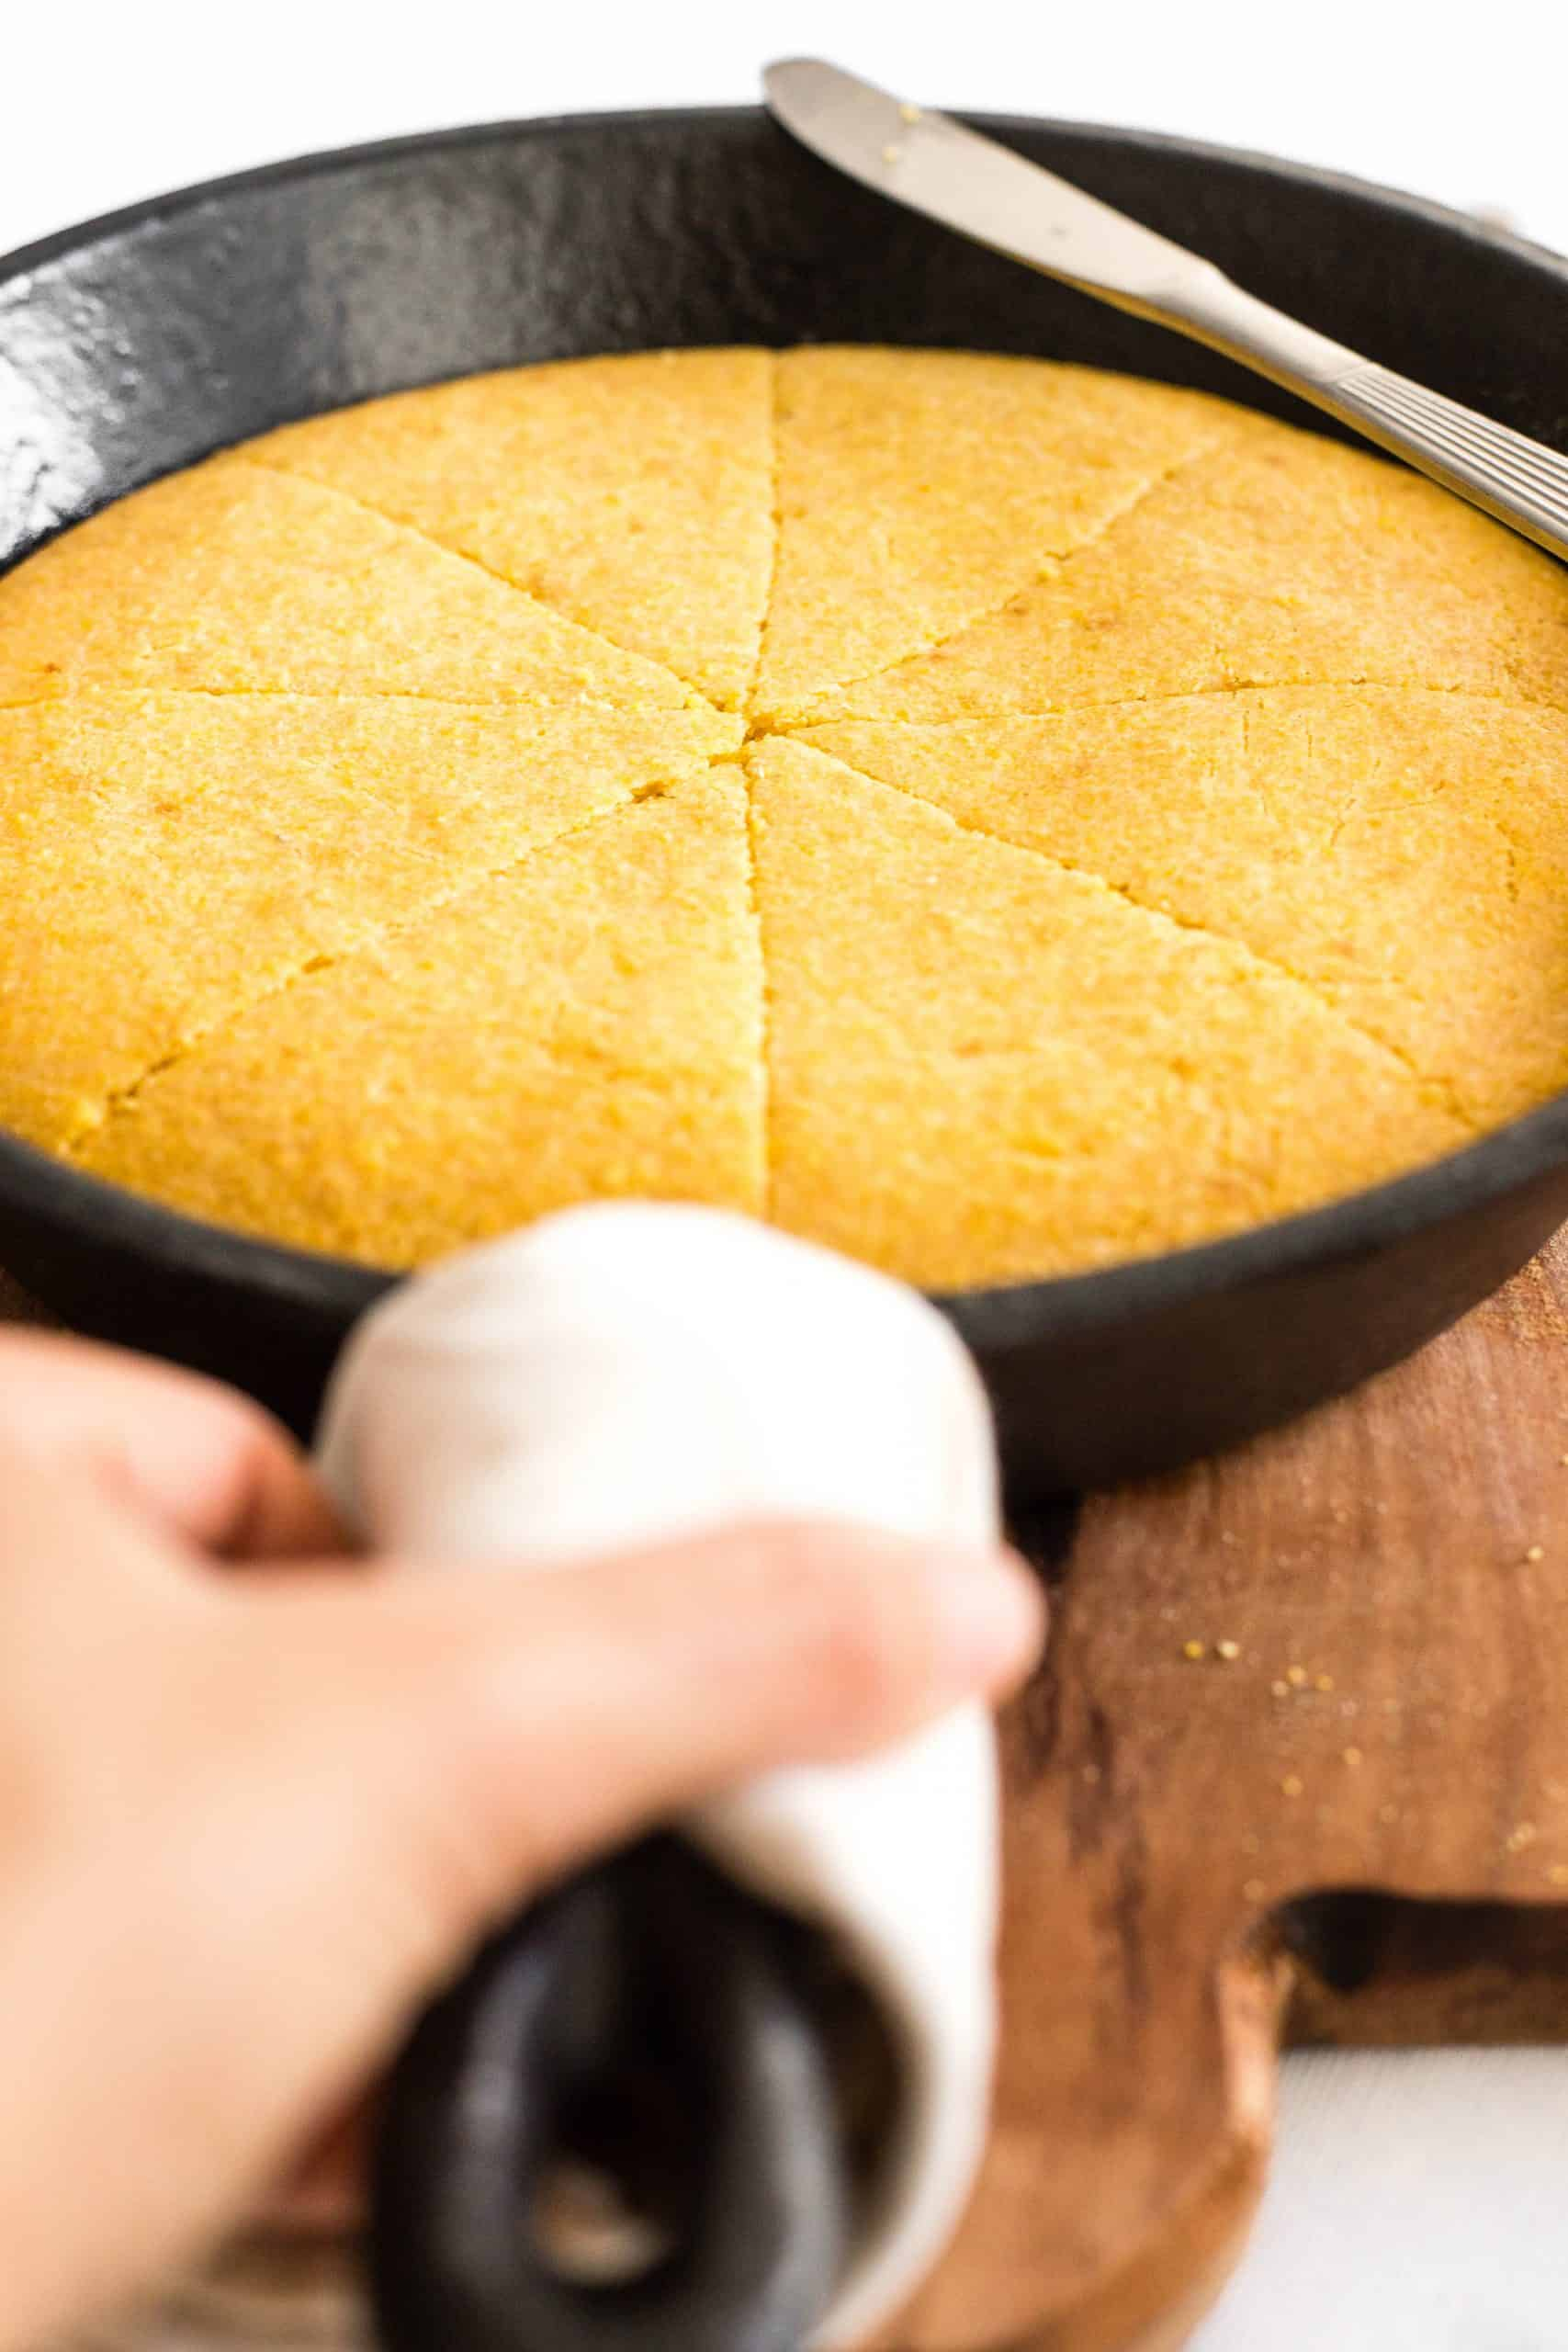 Hand reaching for a skillet with gluten-free cornbread.